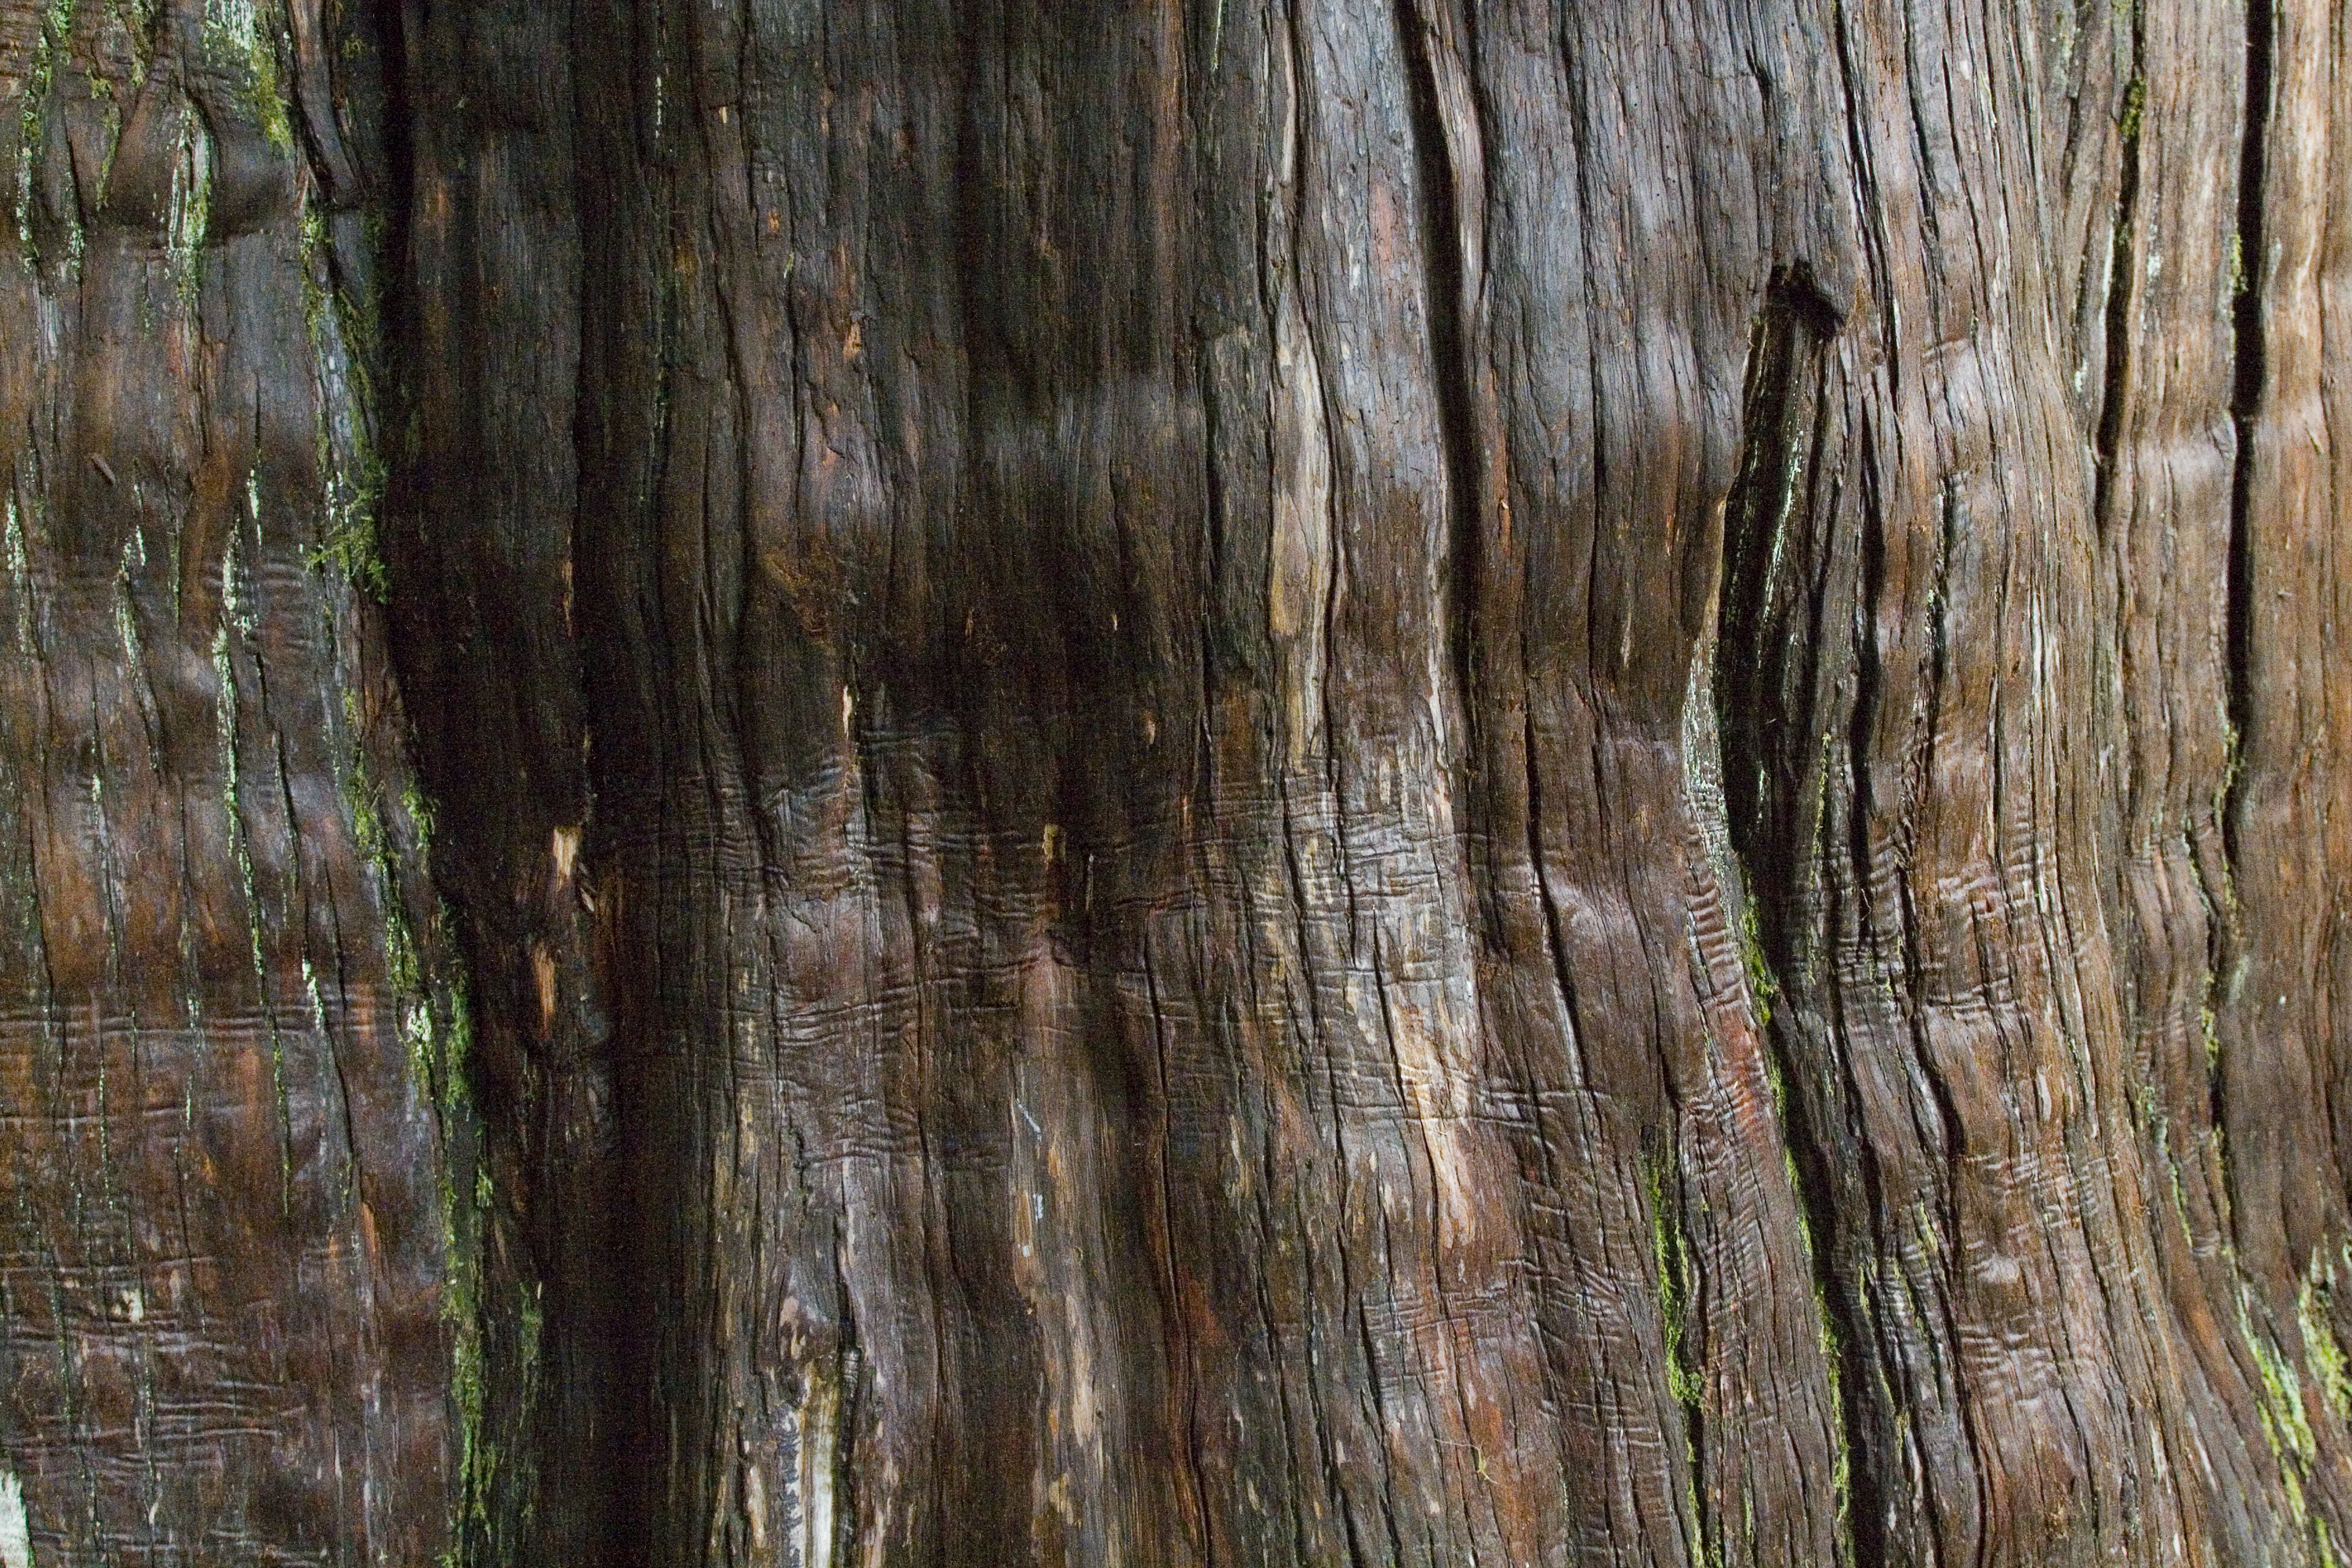 Undulating old growth western red cedar bark with creases